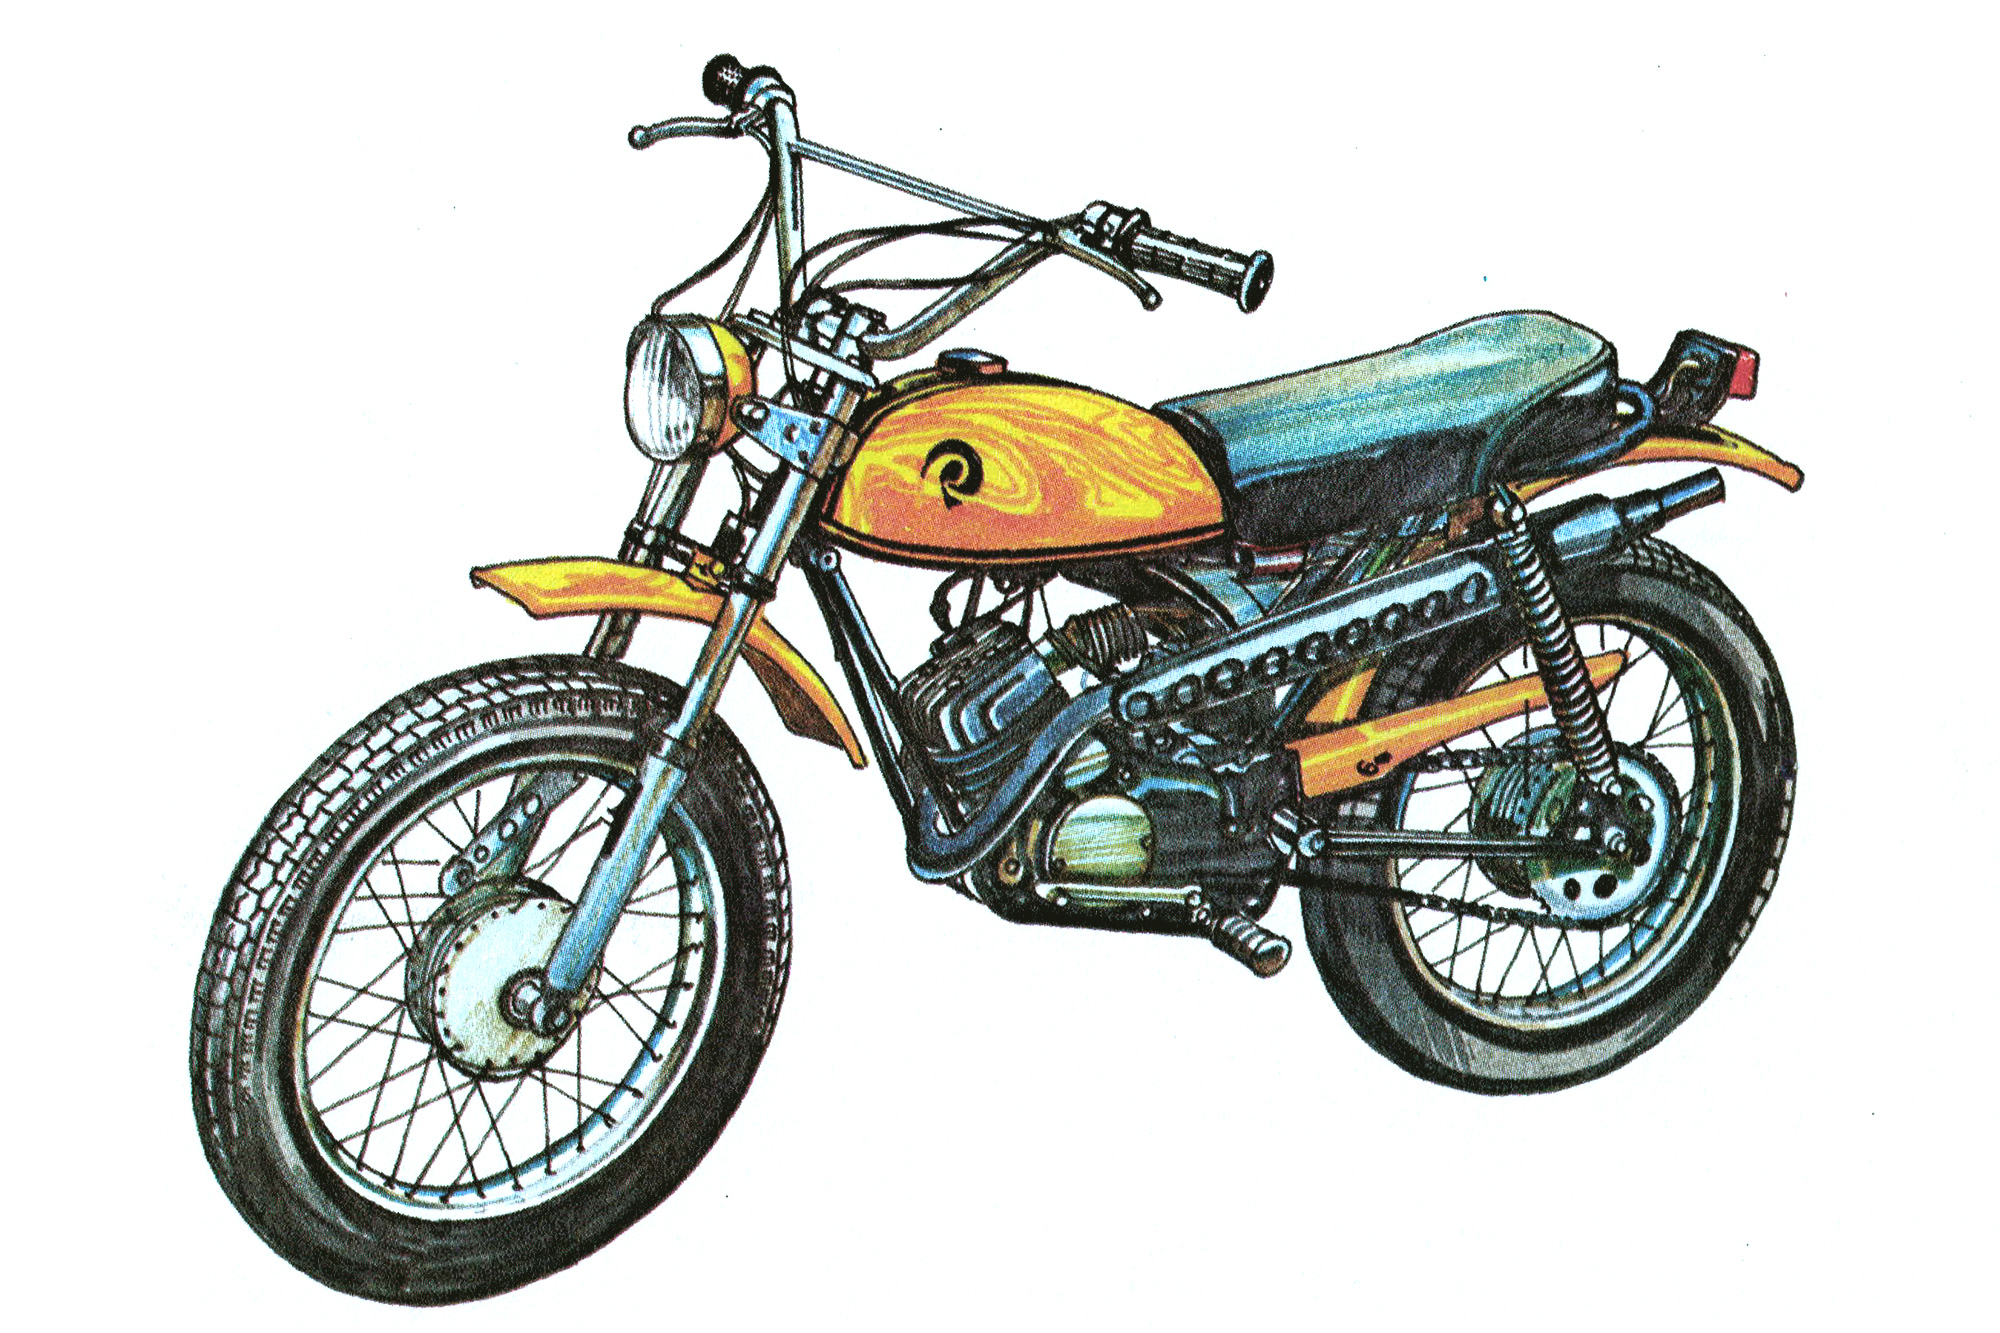 An illustration of a 1970s minibike